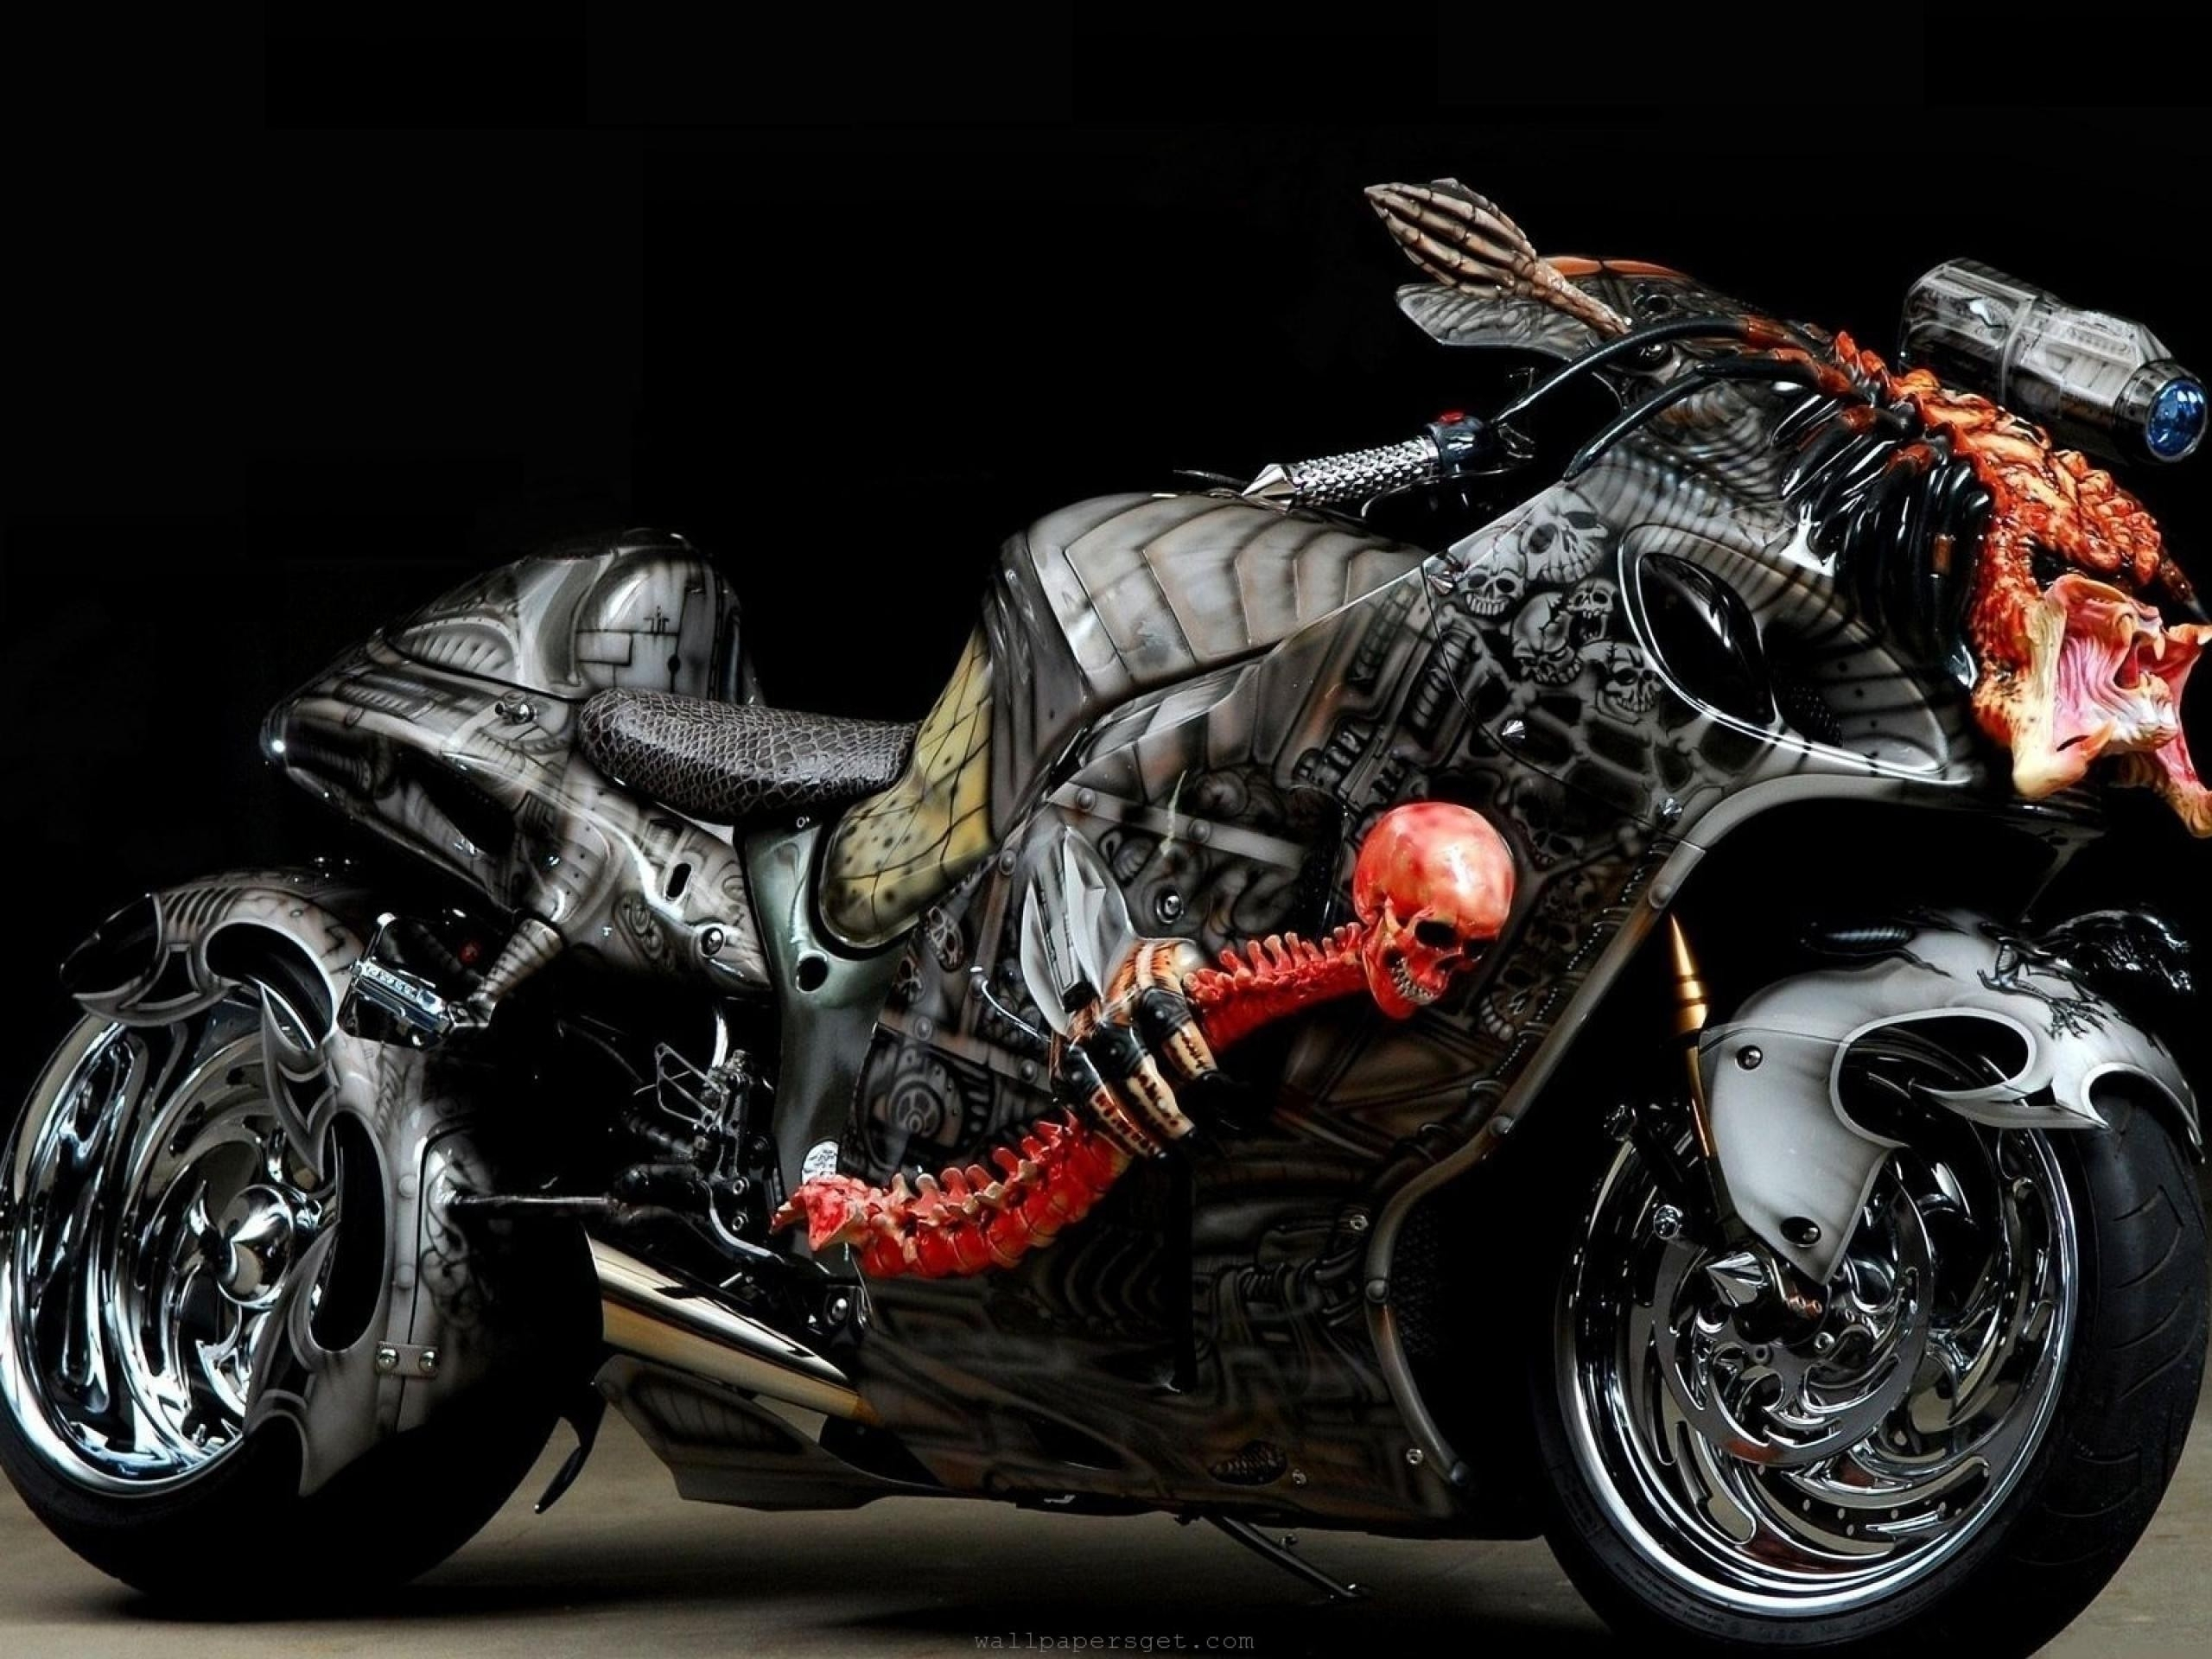 Category Vehicles Motorcycles   Resolution 2560x1920 2560x1920